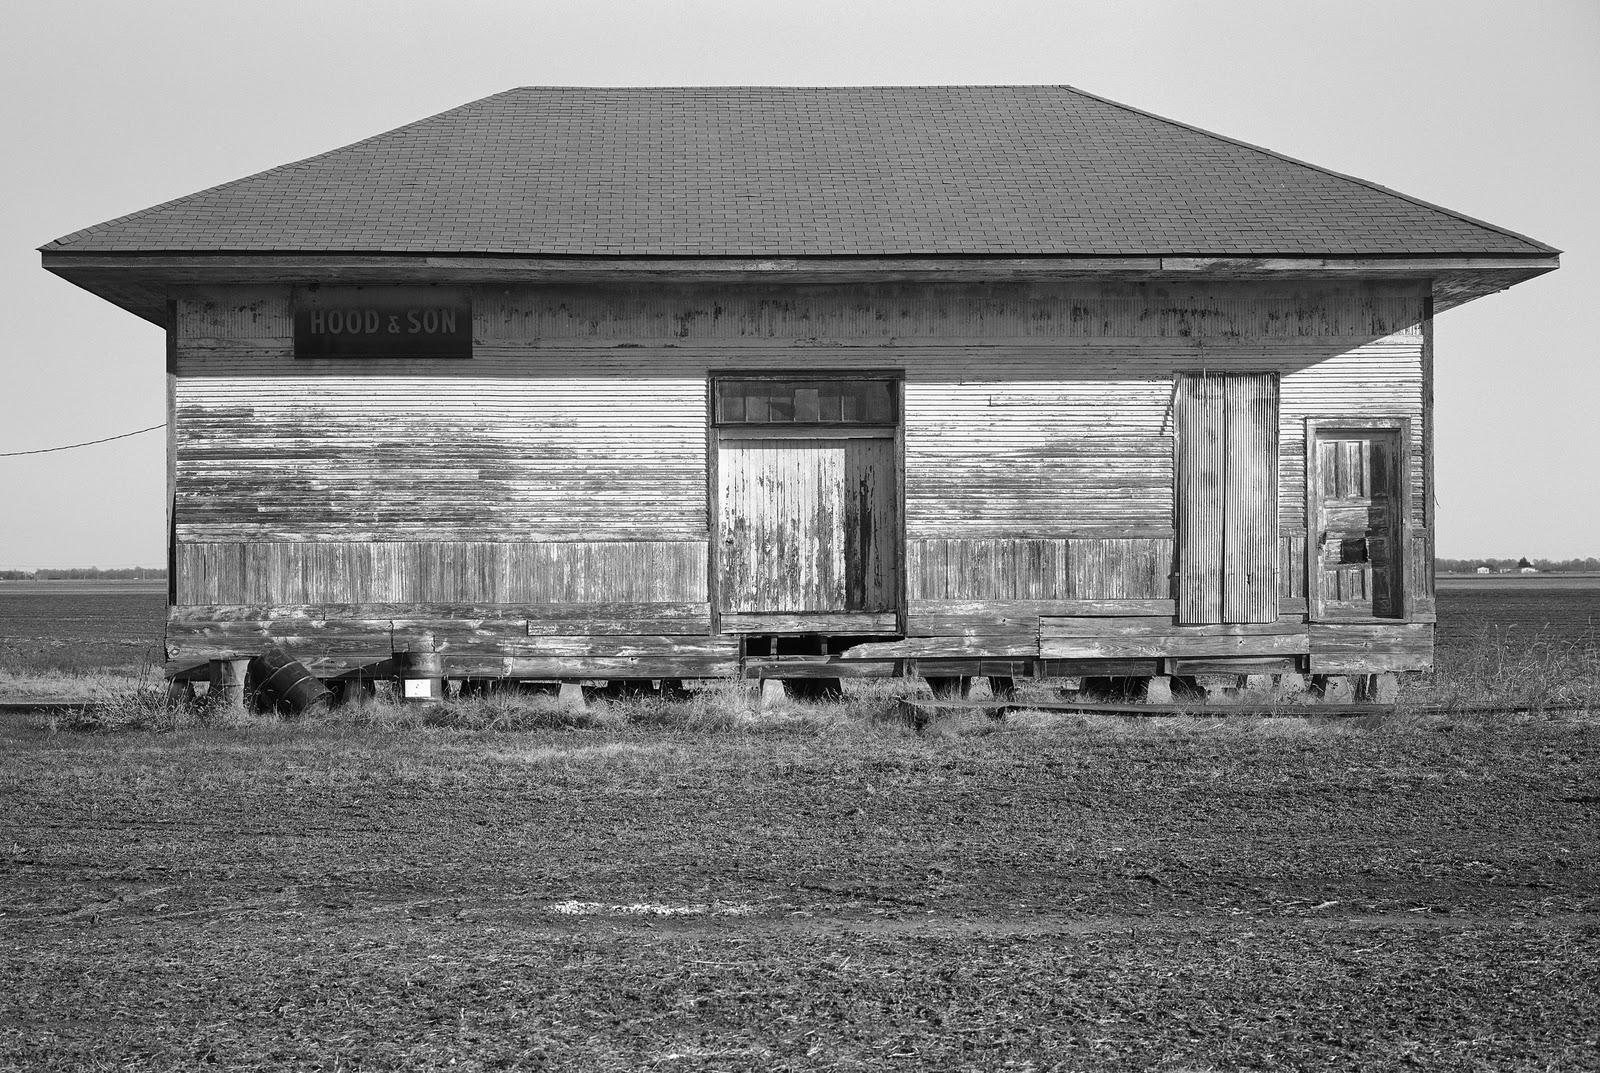 Old train depot dundee mississippi 2010